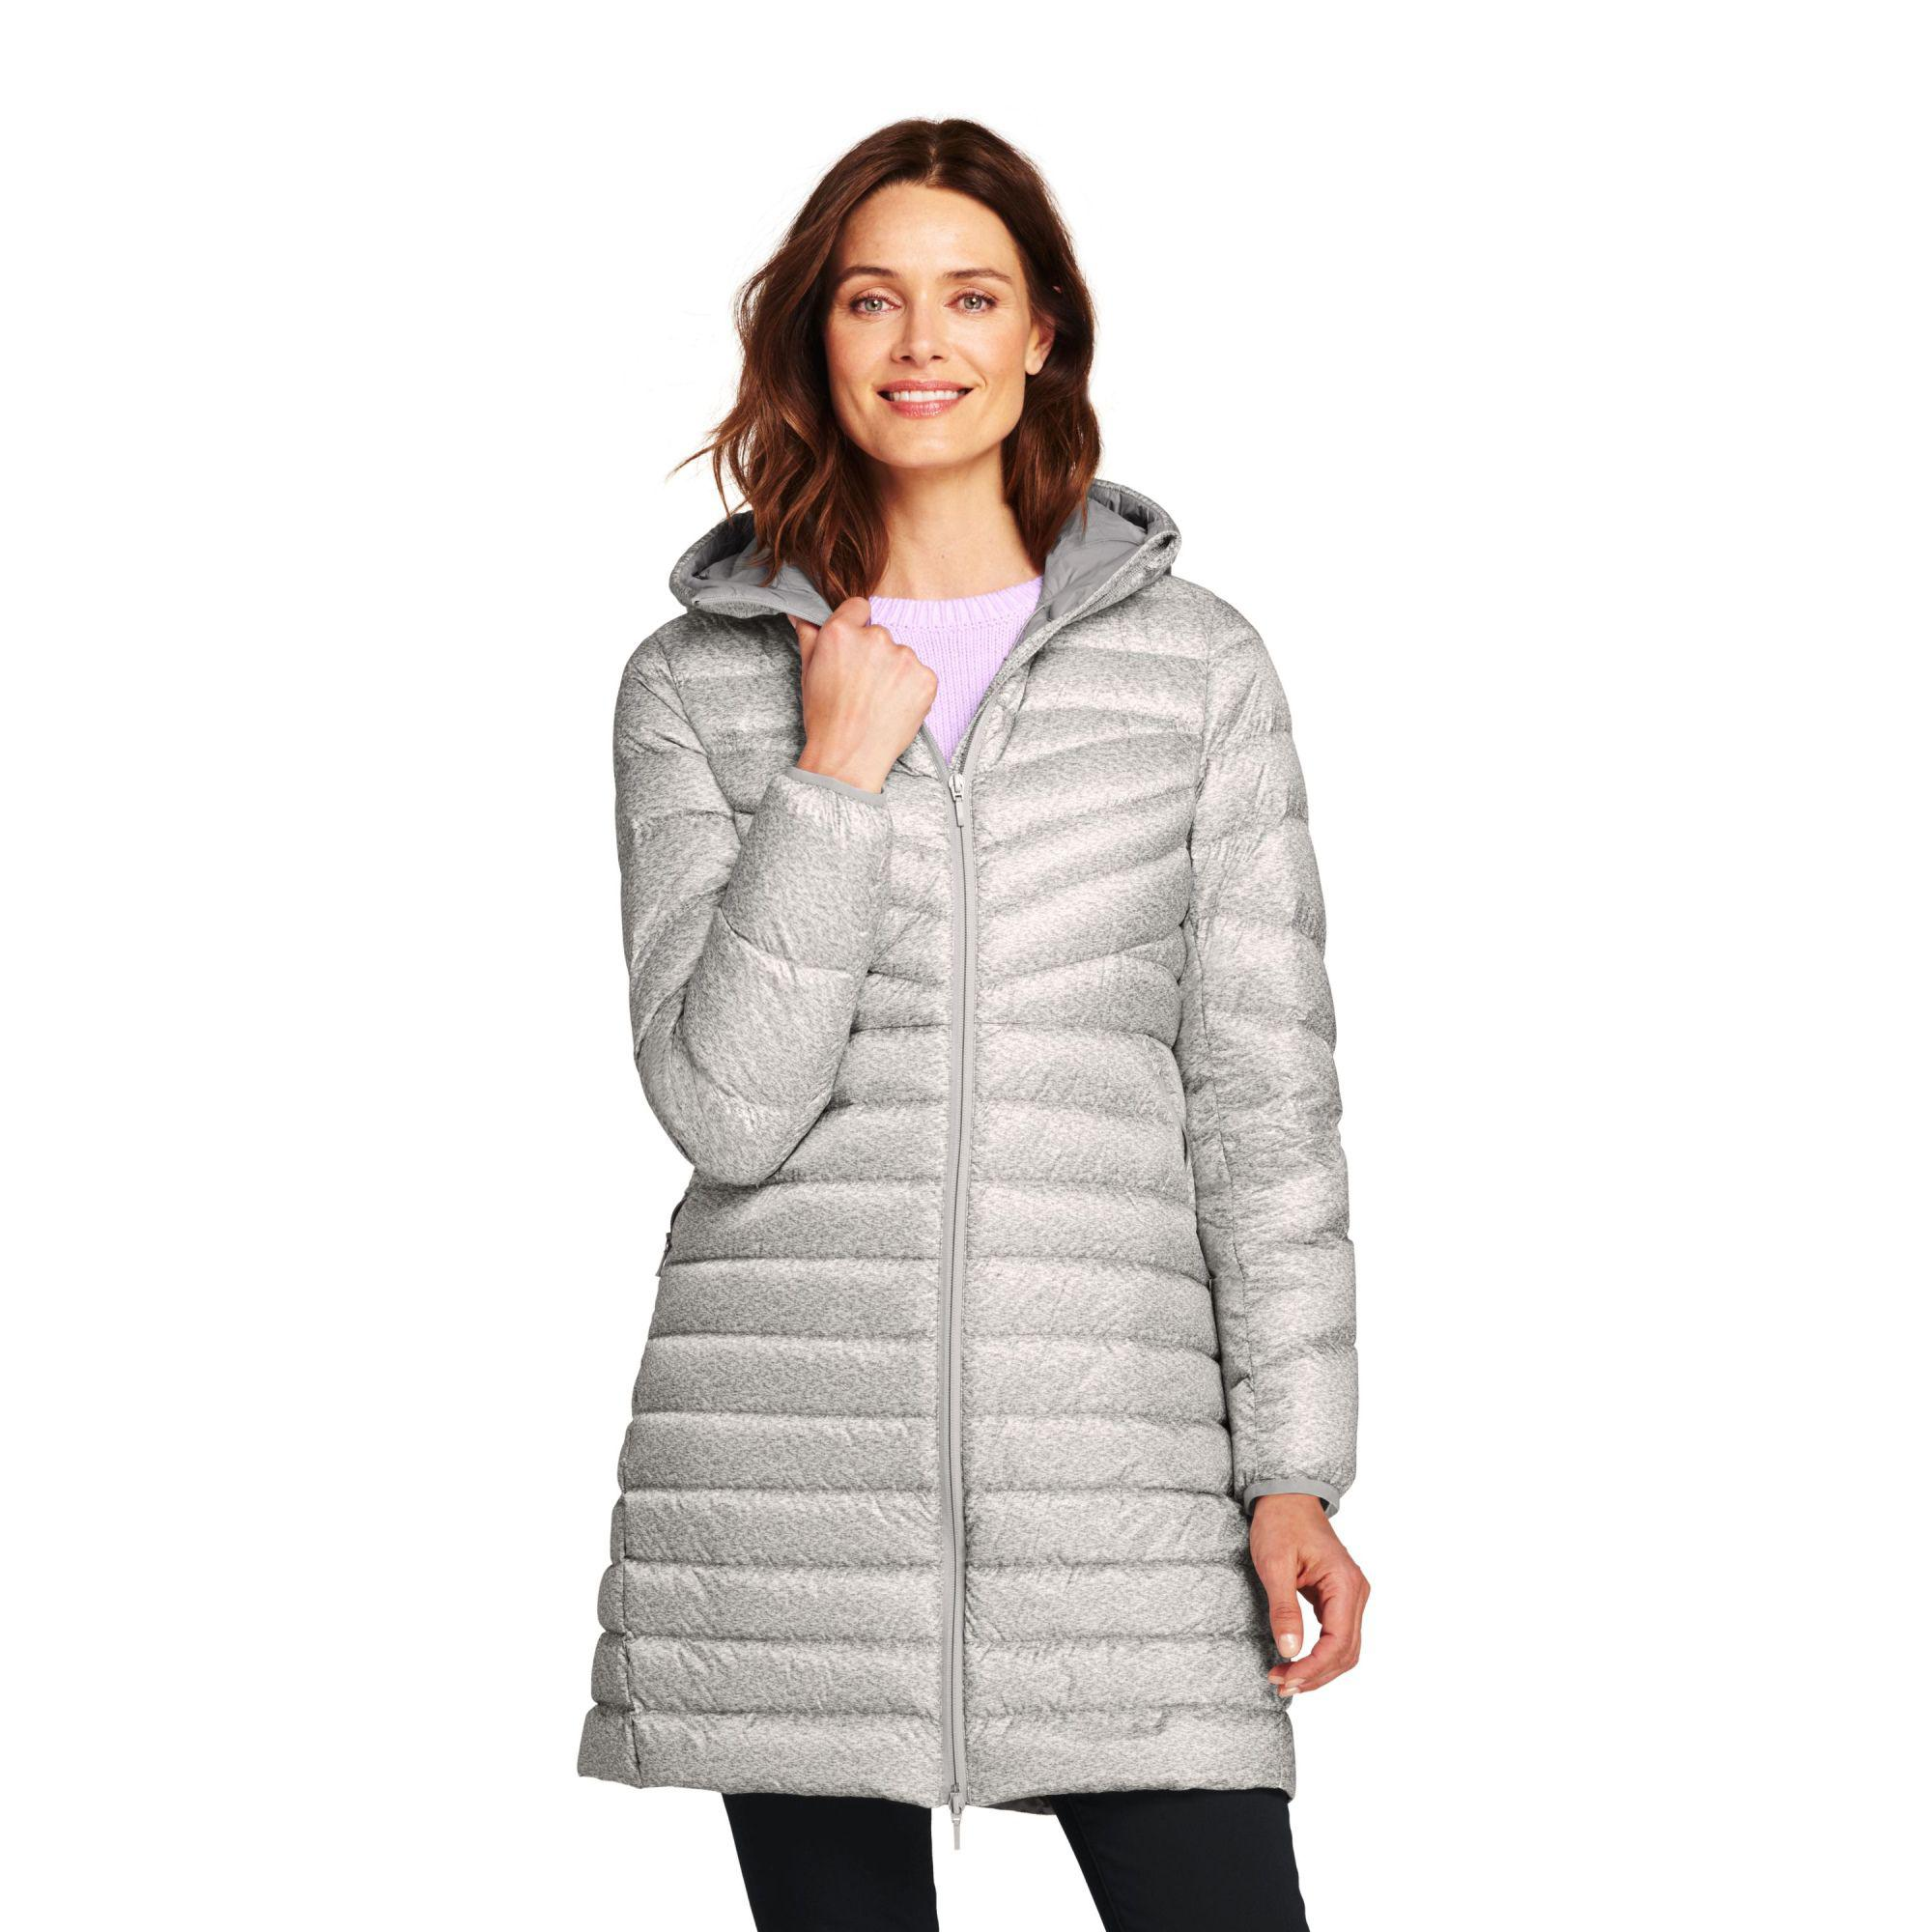 35de654eeb7e Lands  End. Women s Gray Grey Petite Patterned Ultra Light Packable Down  Coat